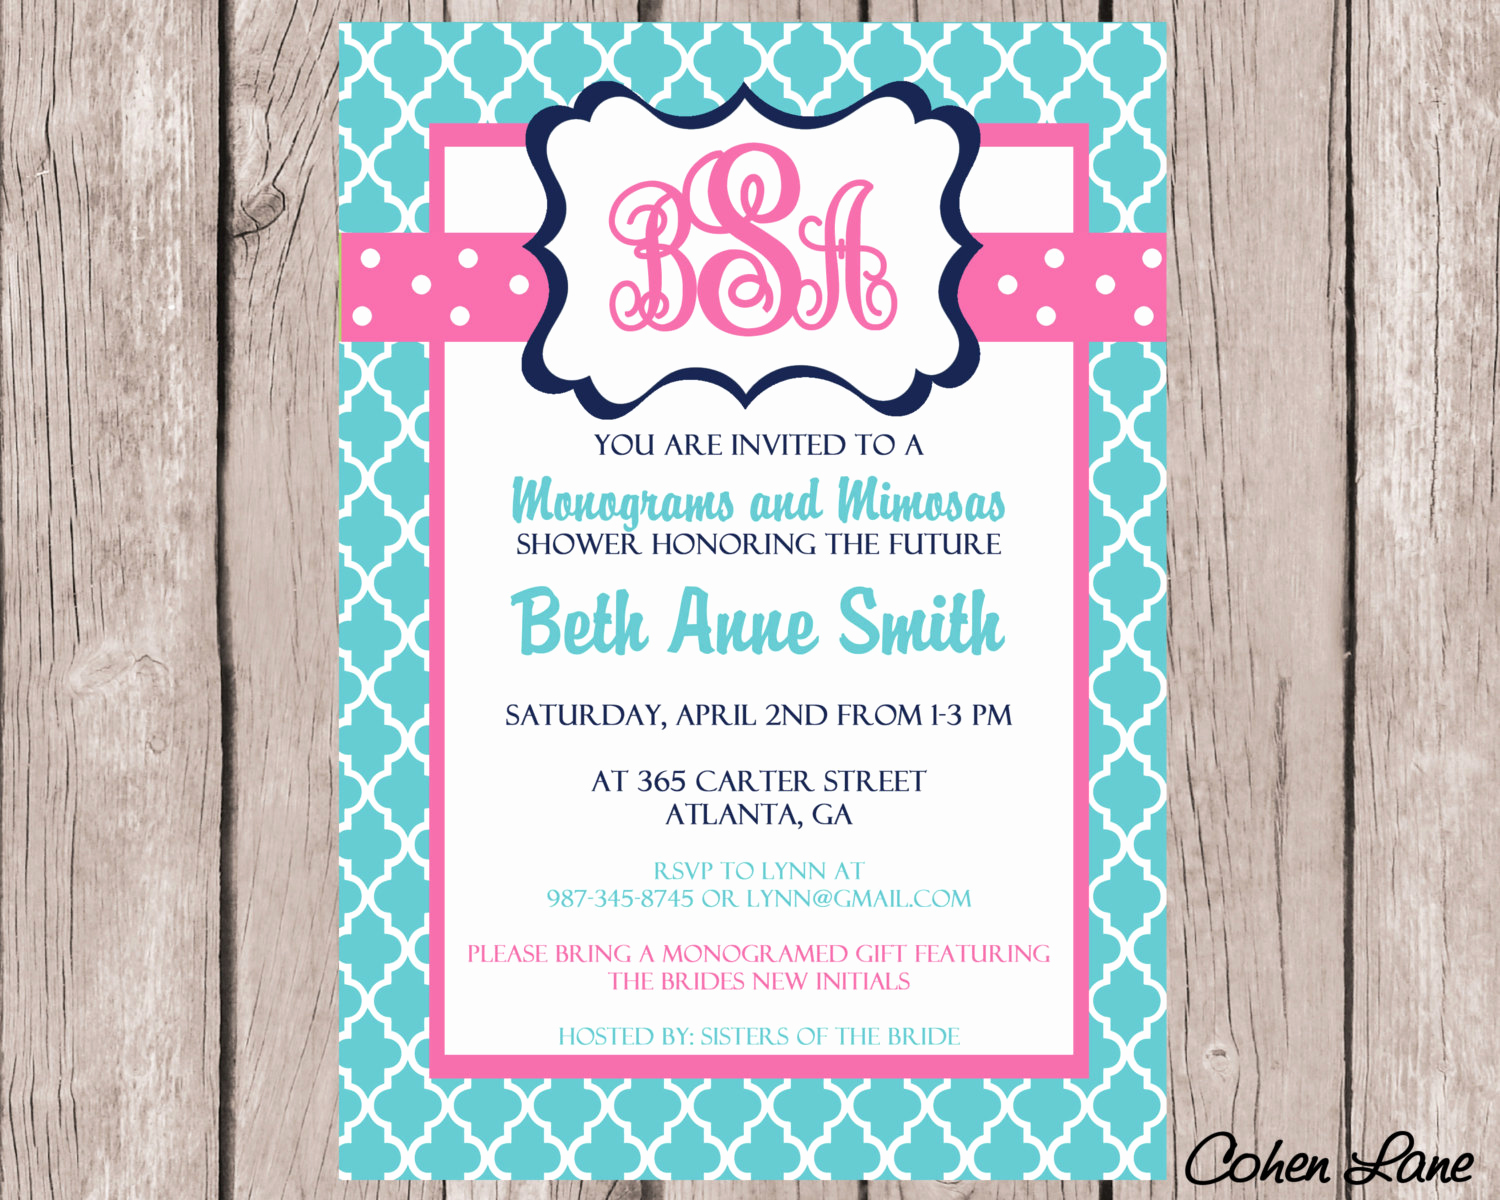 Mimosa Bridal Shower Invitation New Monograms and Mimosas Wedding Shower Invitation Bridal